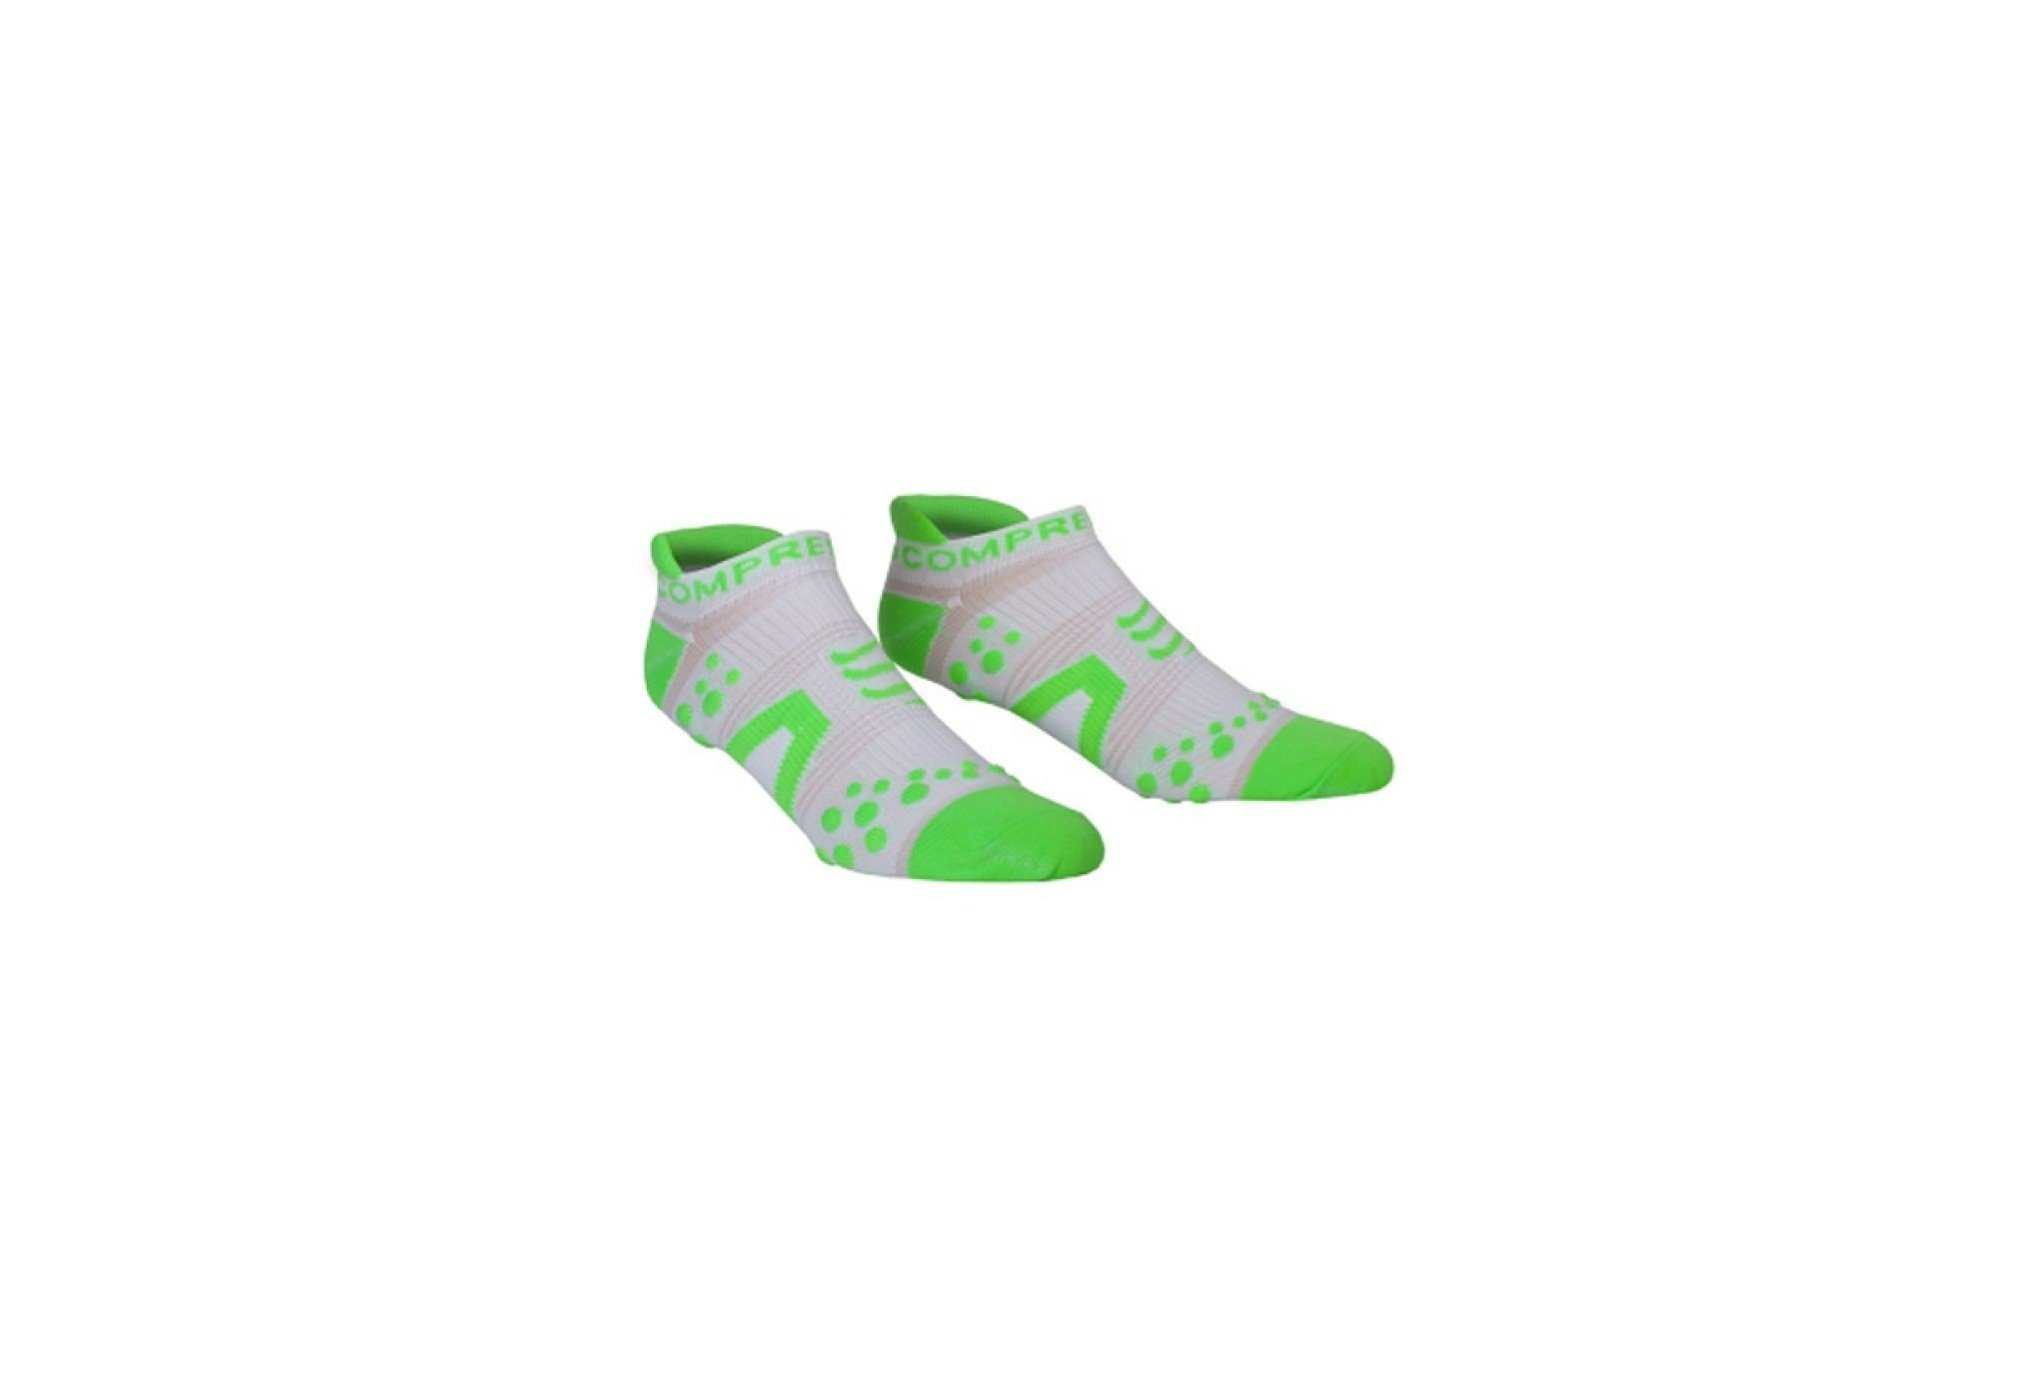 Compressport Chaussettes Pro Racing V2 Run Low Chaussettes